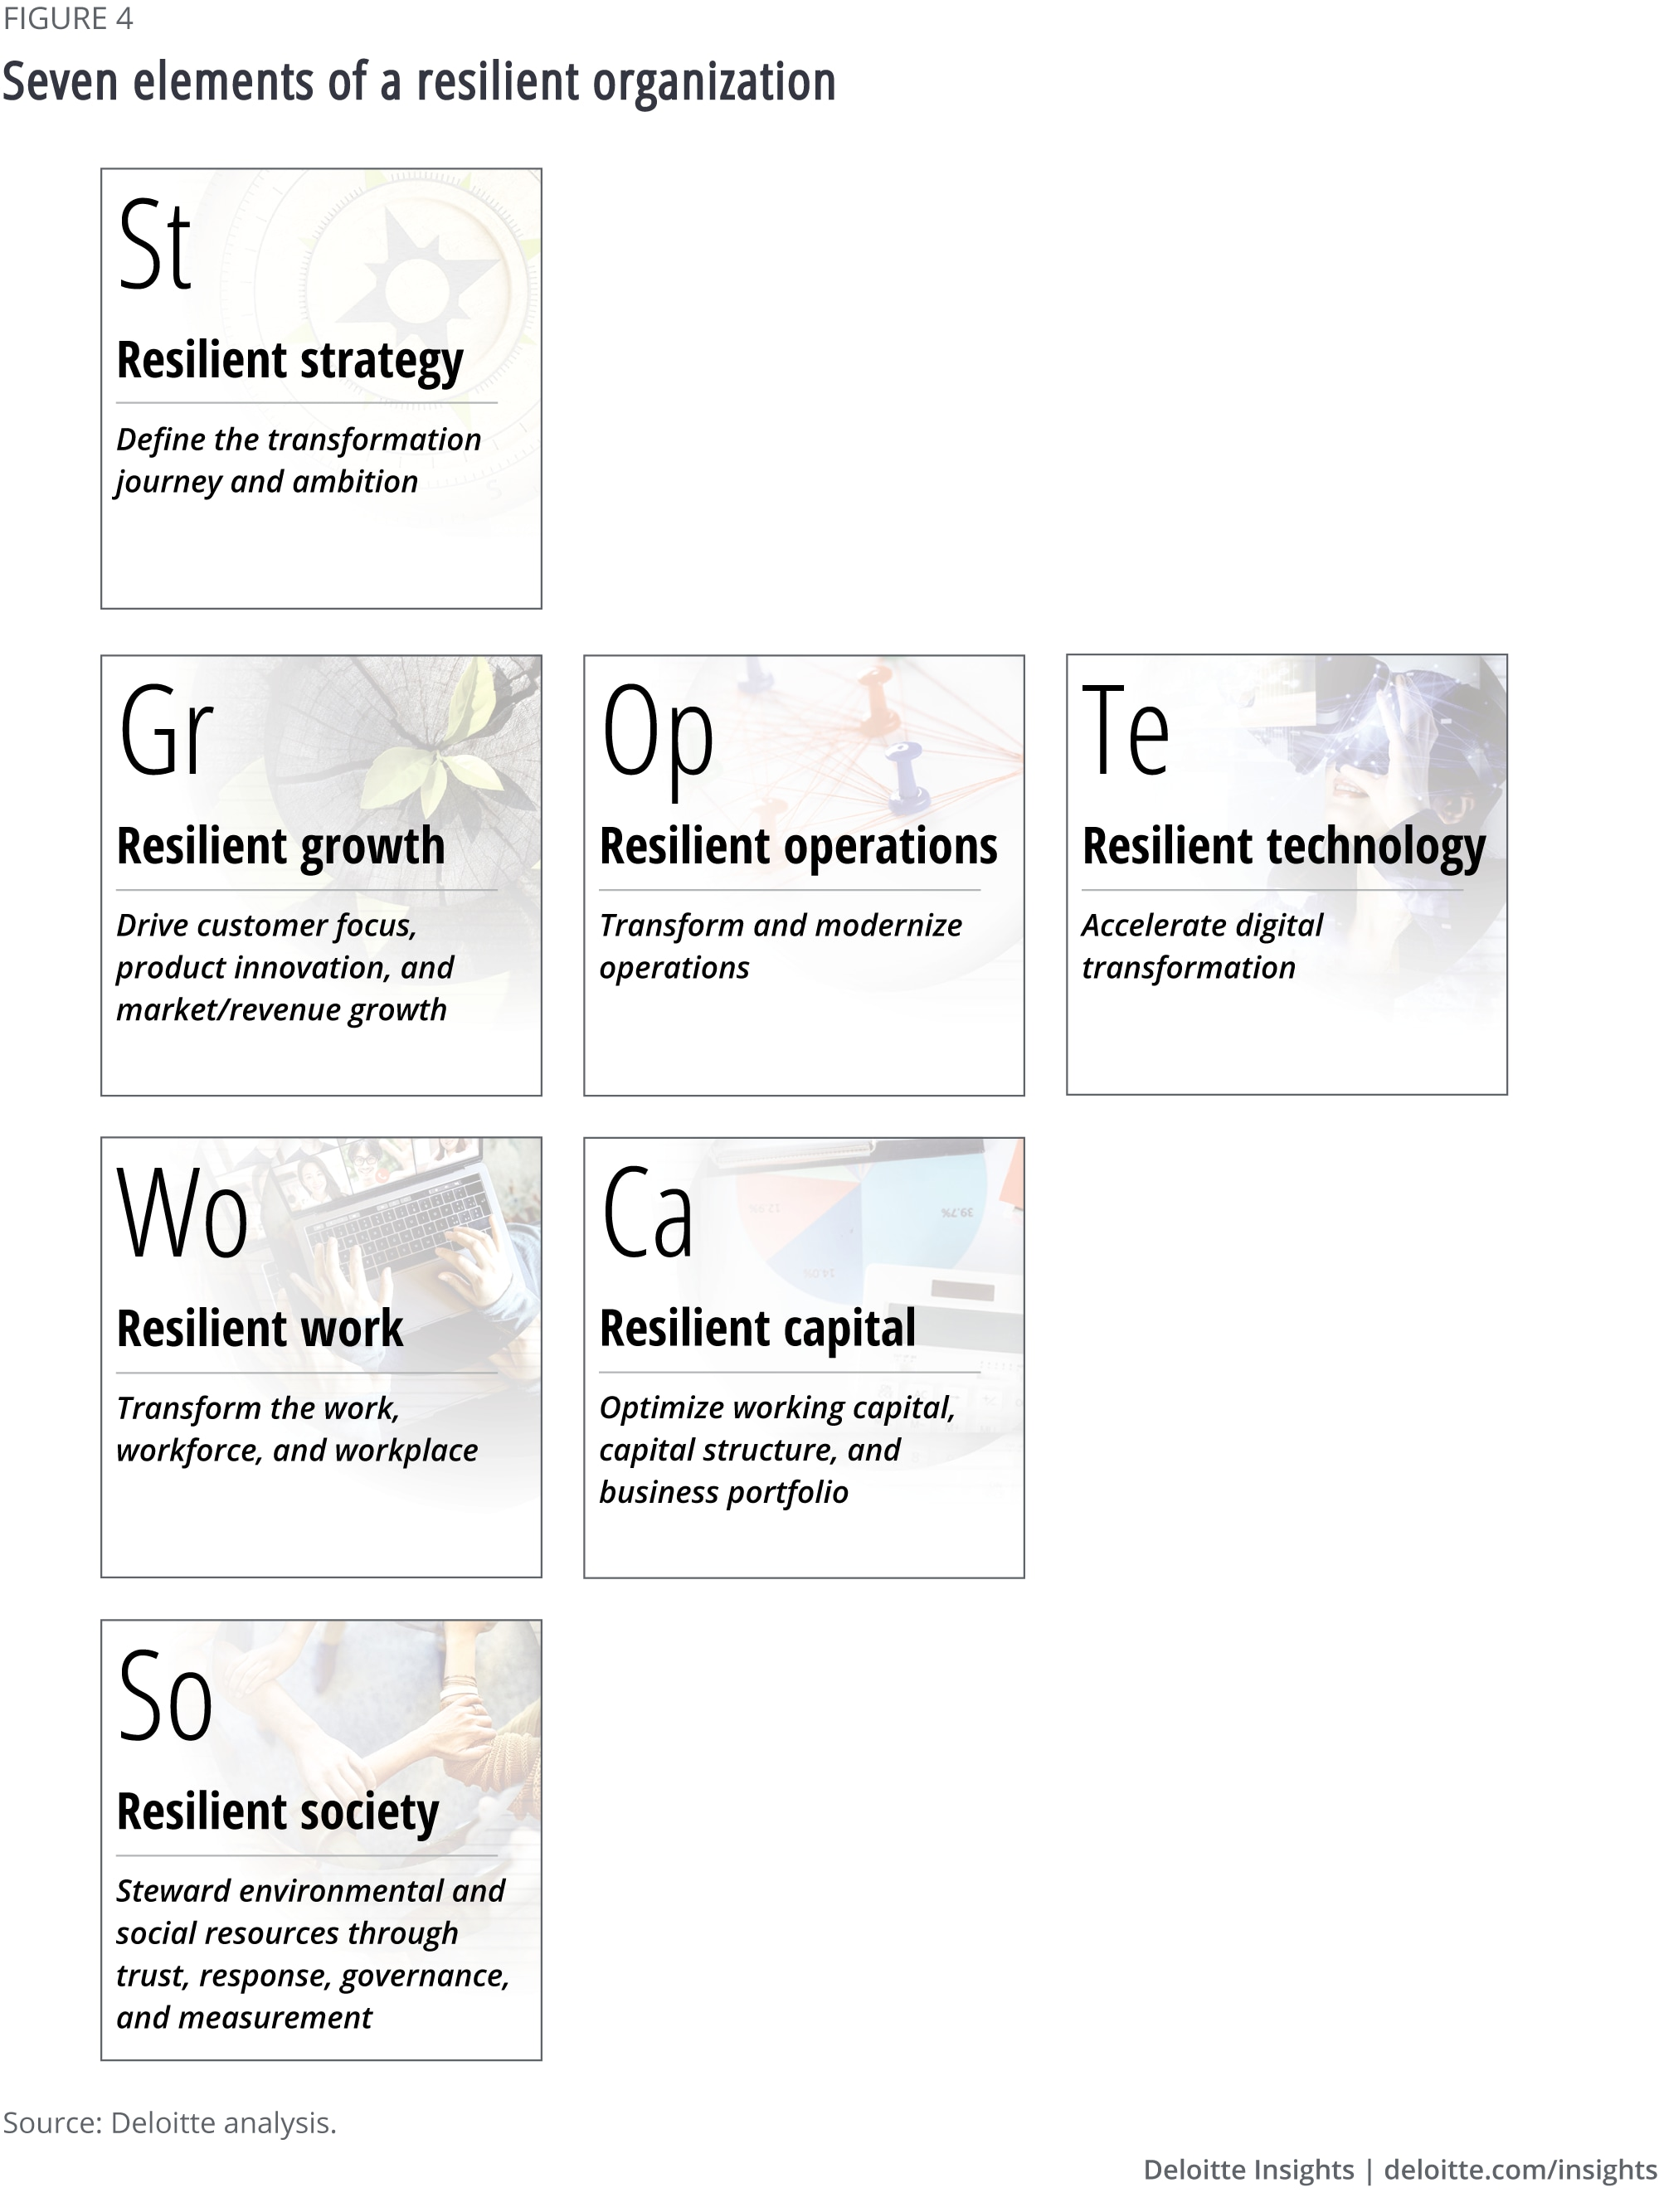 Seven elements of a resilient organization